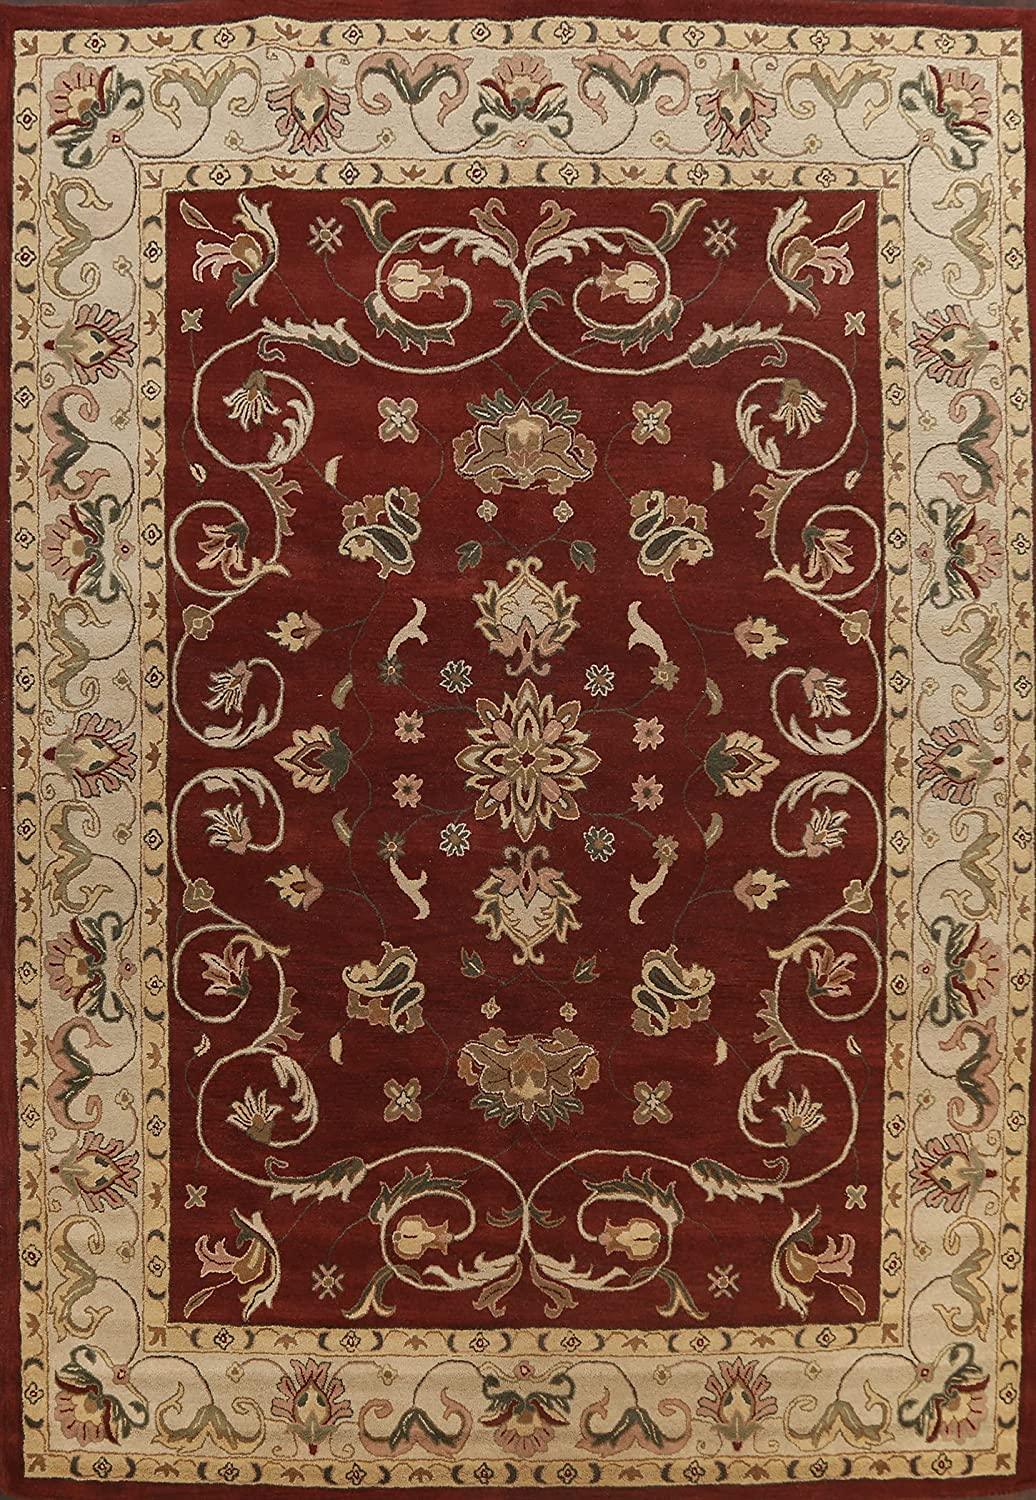 Floral Red Area Save money Branded goods Rug Wool Hand-Tufted x Carpet 10x13 0'' 13' 10'